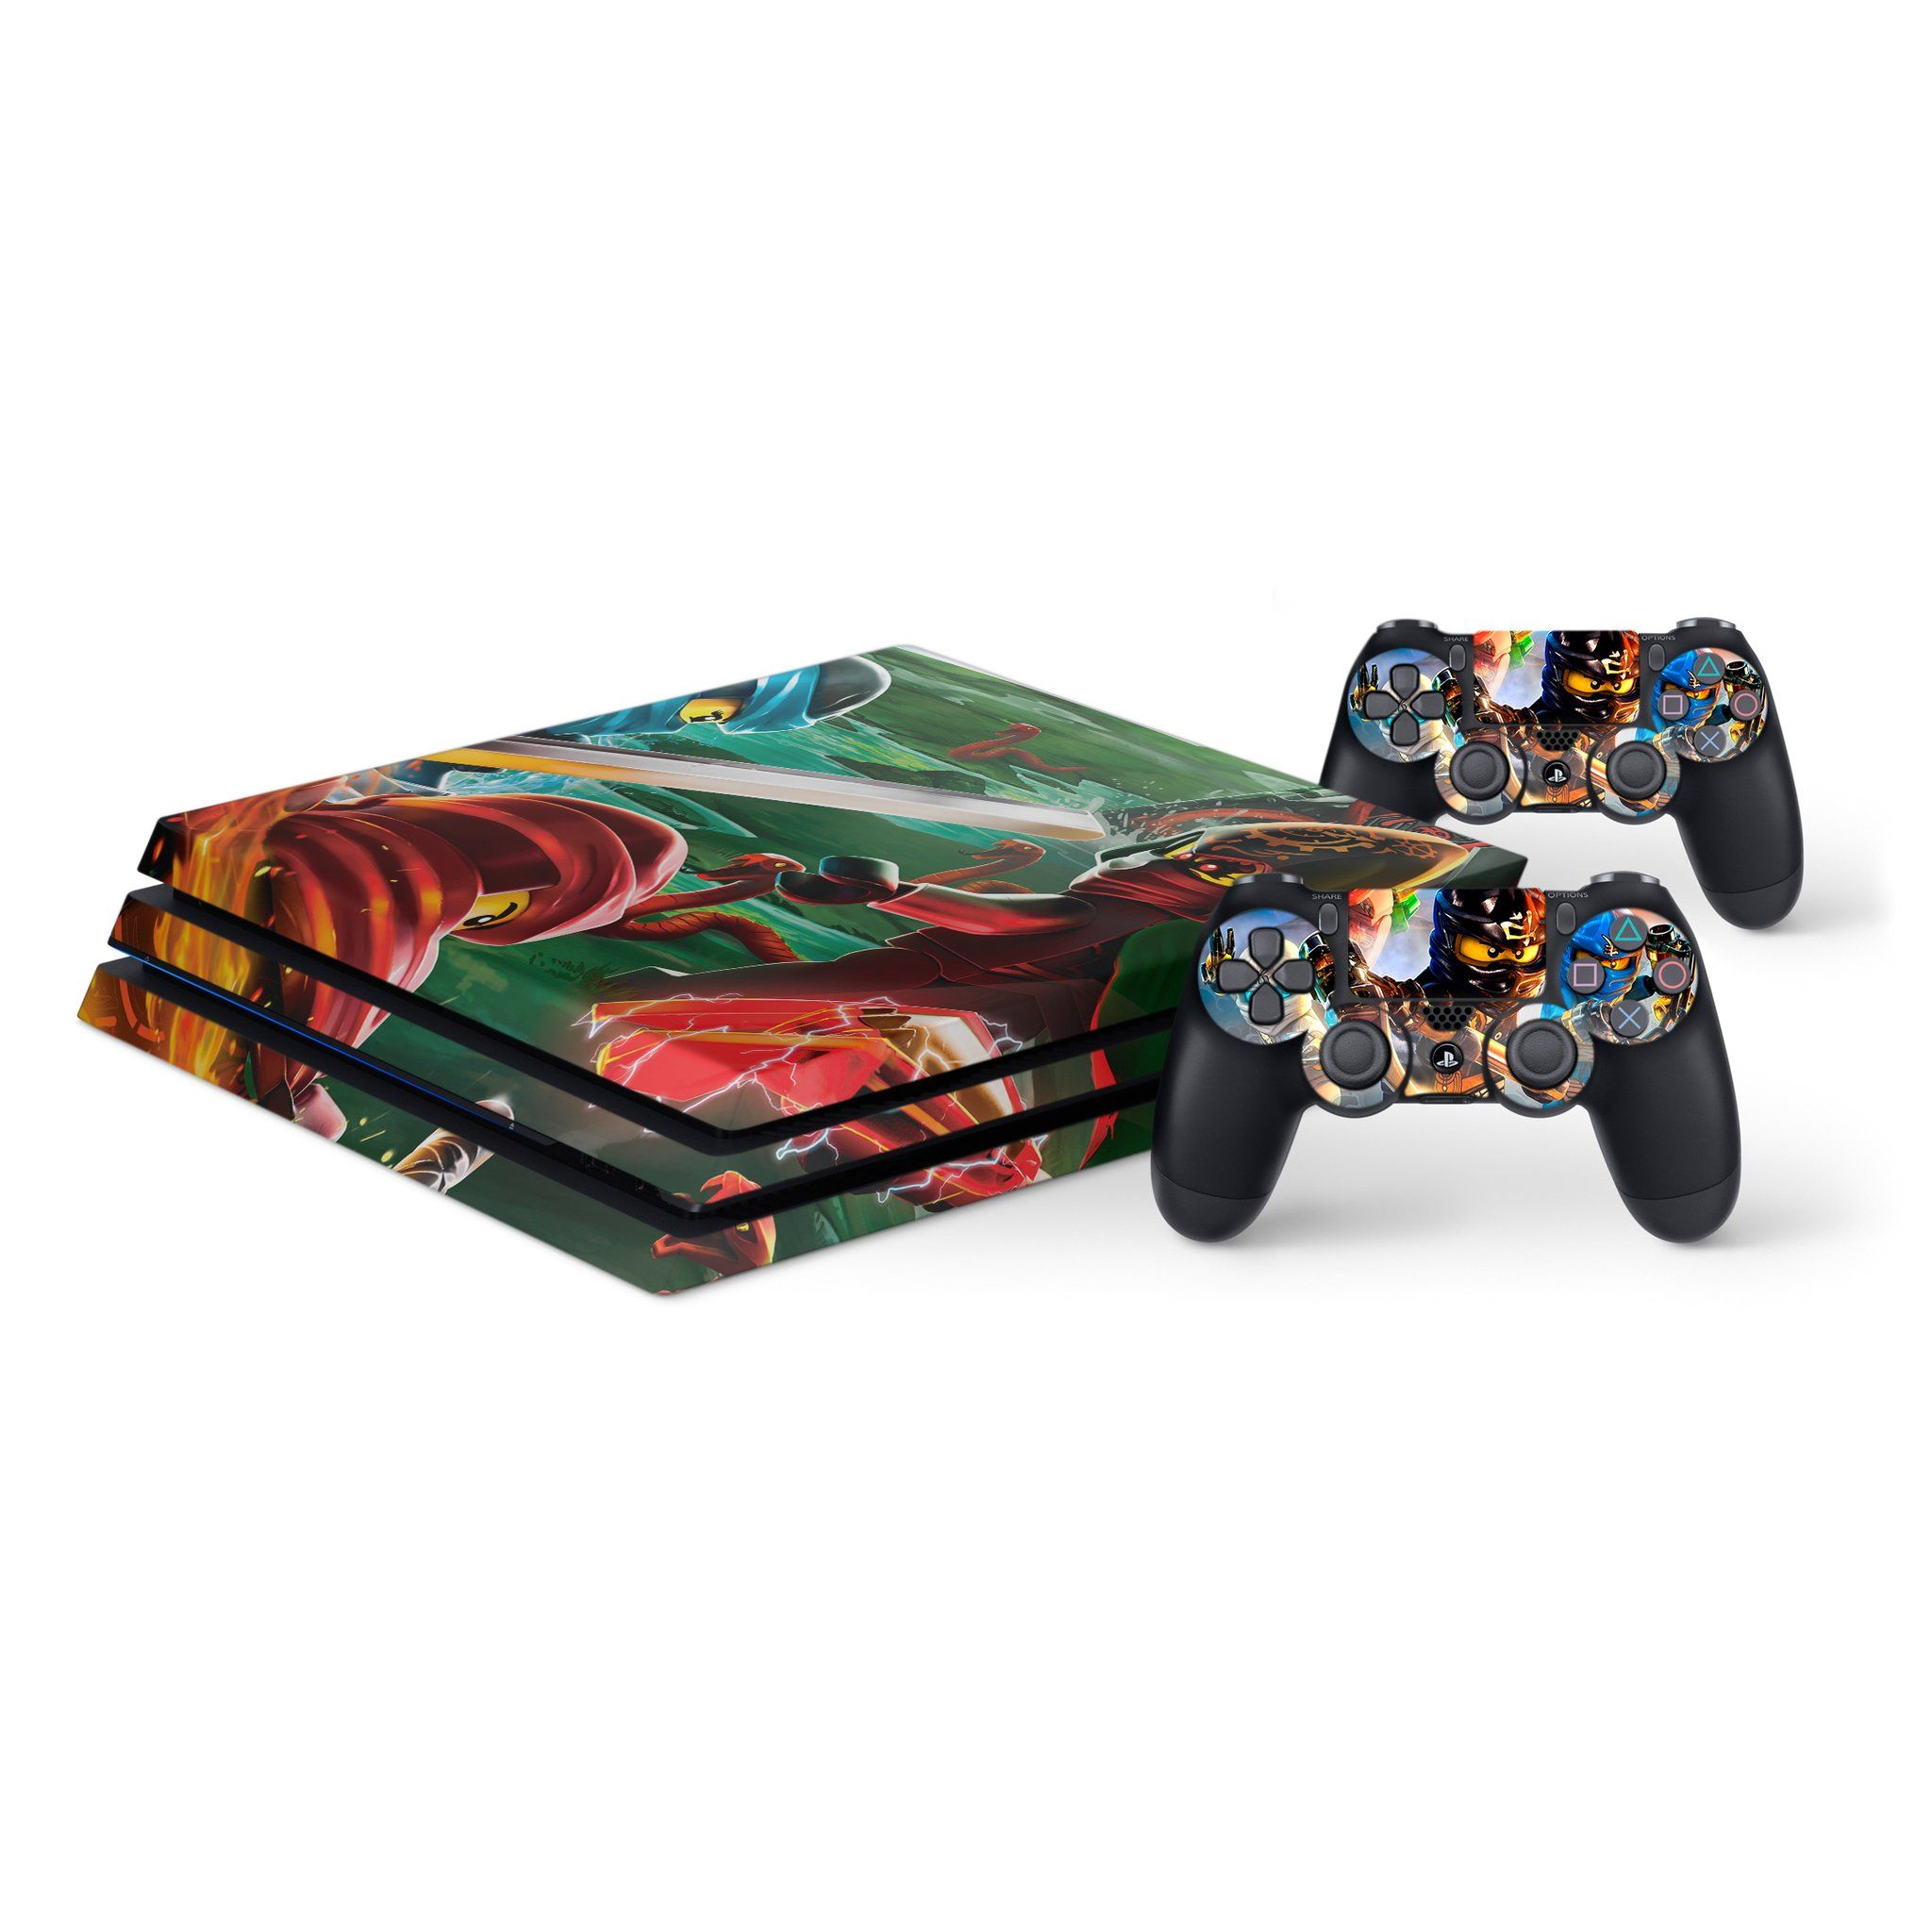 MagicSkin Skin Sticker Wrap Cover Vinyl Decal for Playstation PS4 Pro Console and Controllers